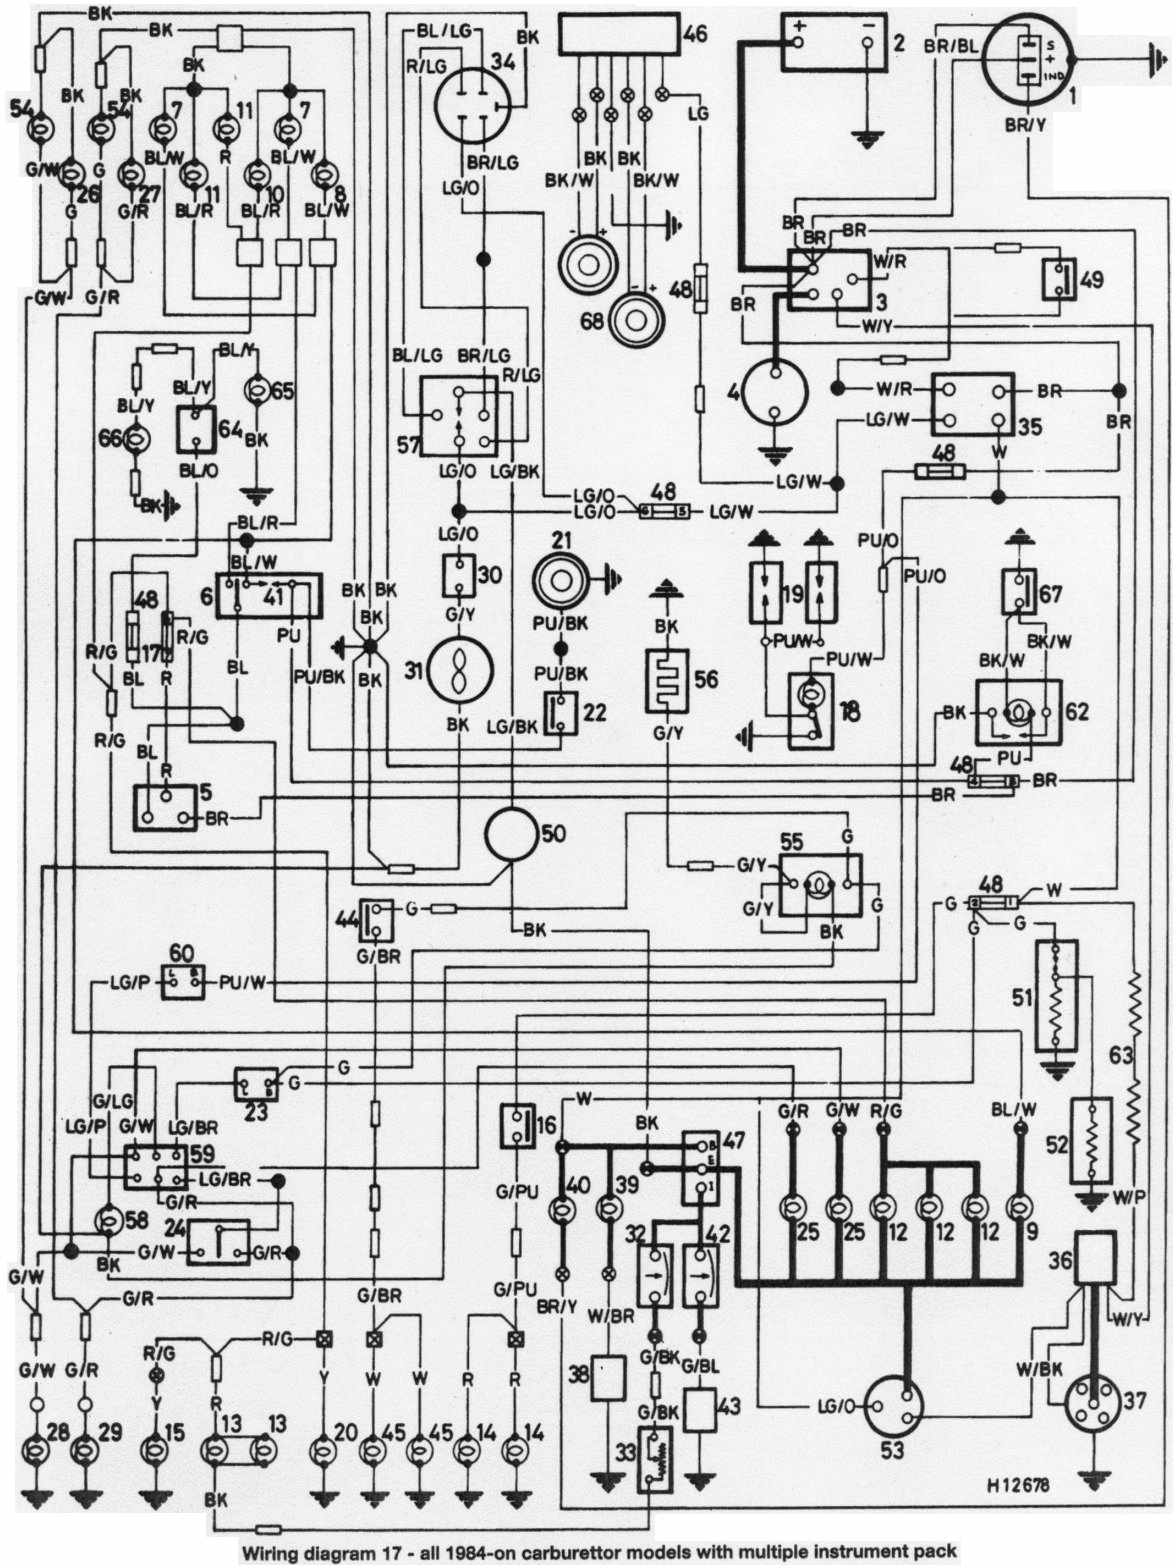 Charming Mf 202 Wiring-diagram Pictures - Best Image Wire - kinkajo.us